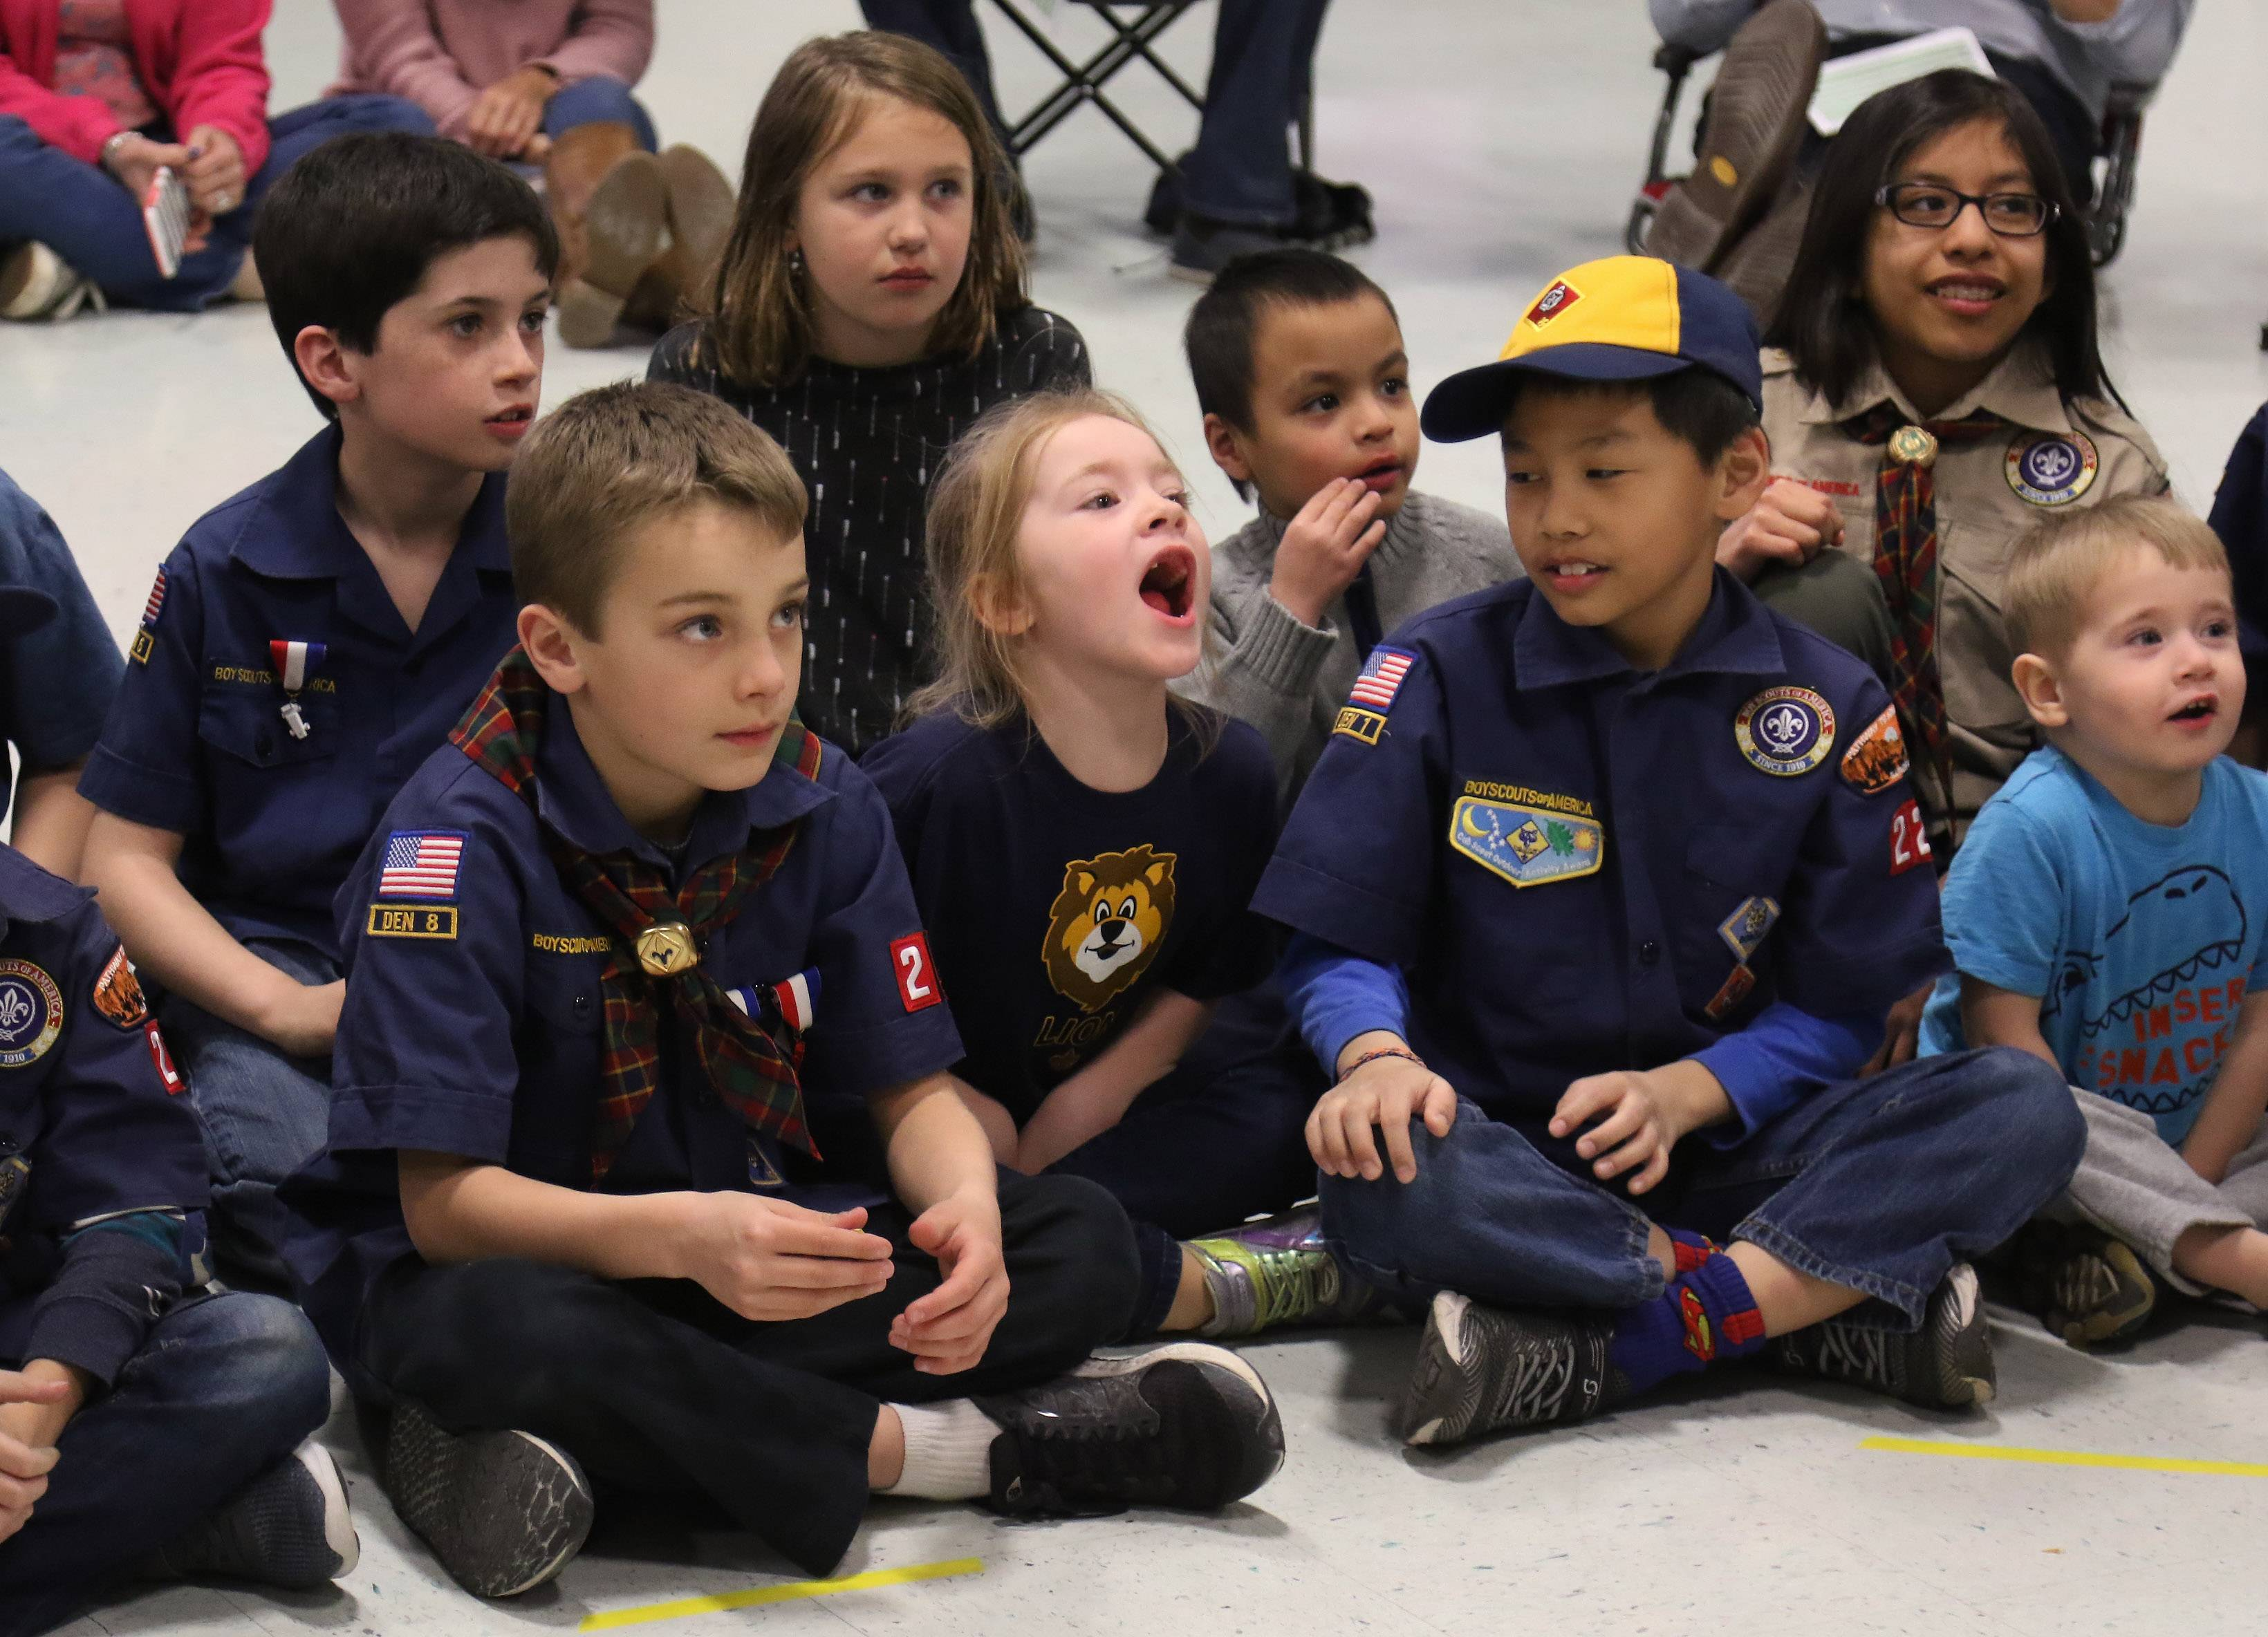 Addison Carver, 6, of Lake Barrington, center, roars like a lion during a March meeting of Cub Scouts at North Barrington Elementary School. Cub Scout Pack 229 is coed.